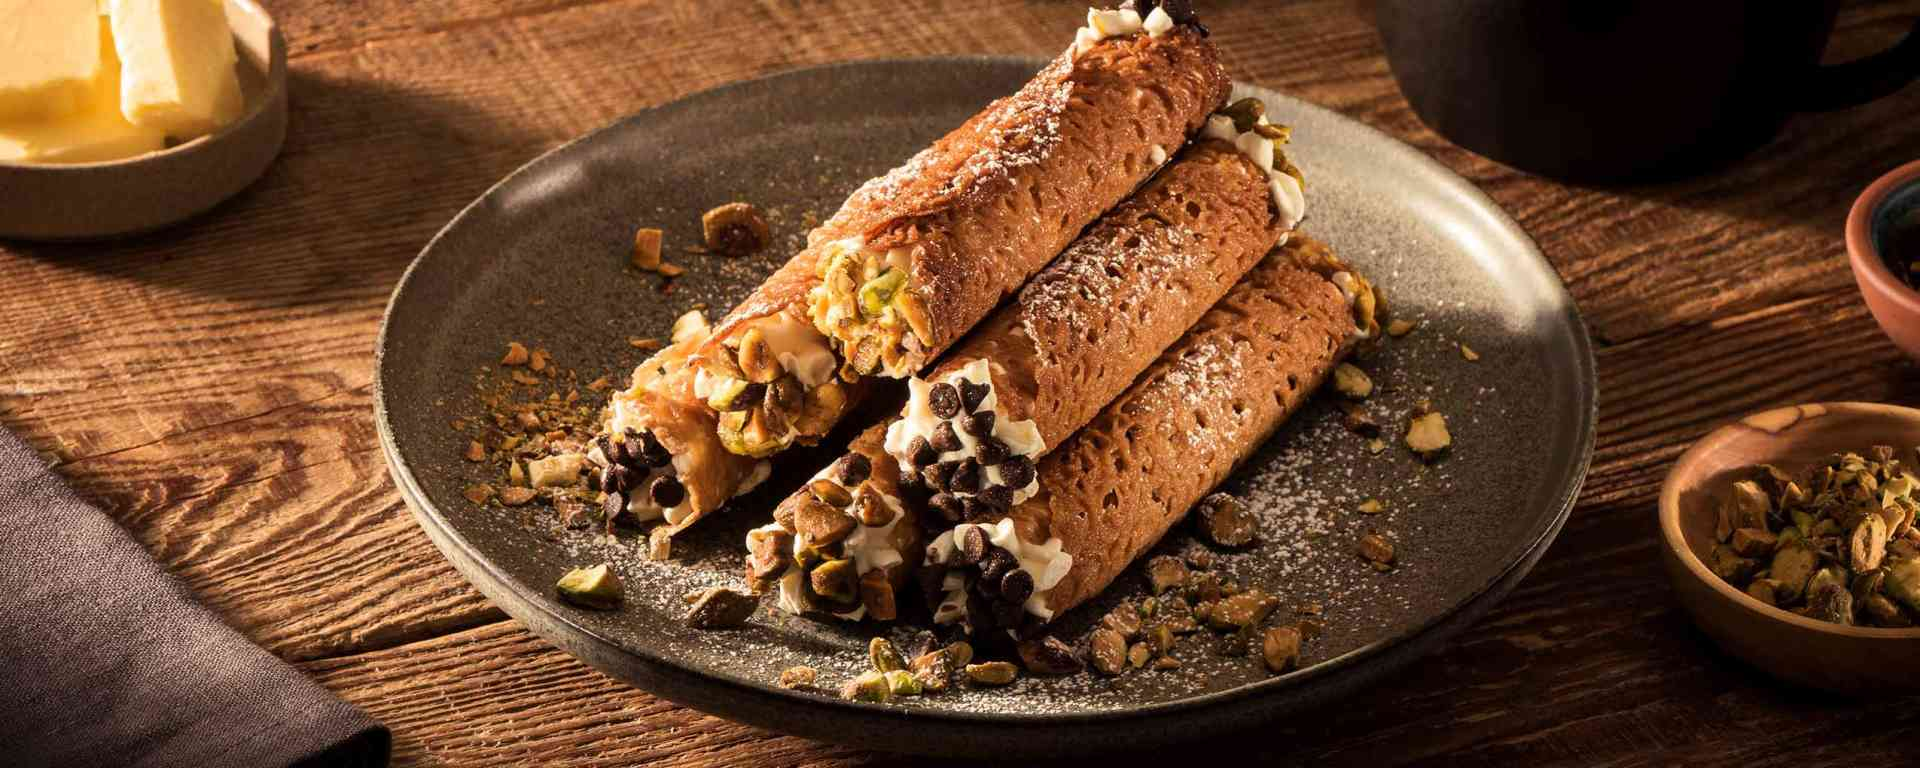 Photo for - Brandy Snap Cannoli with Ricotta Filling